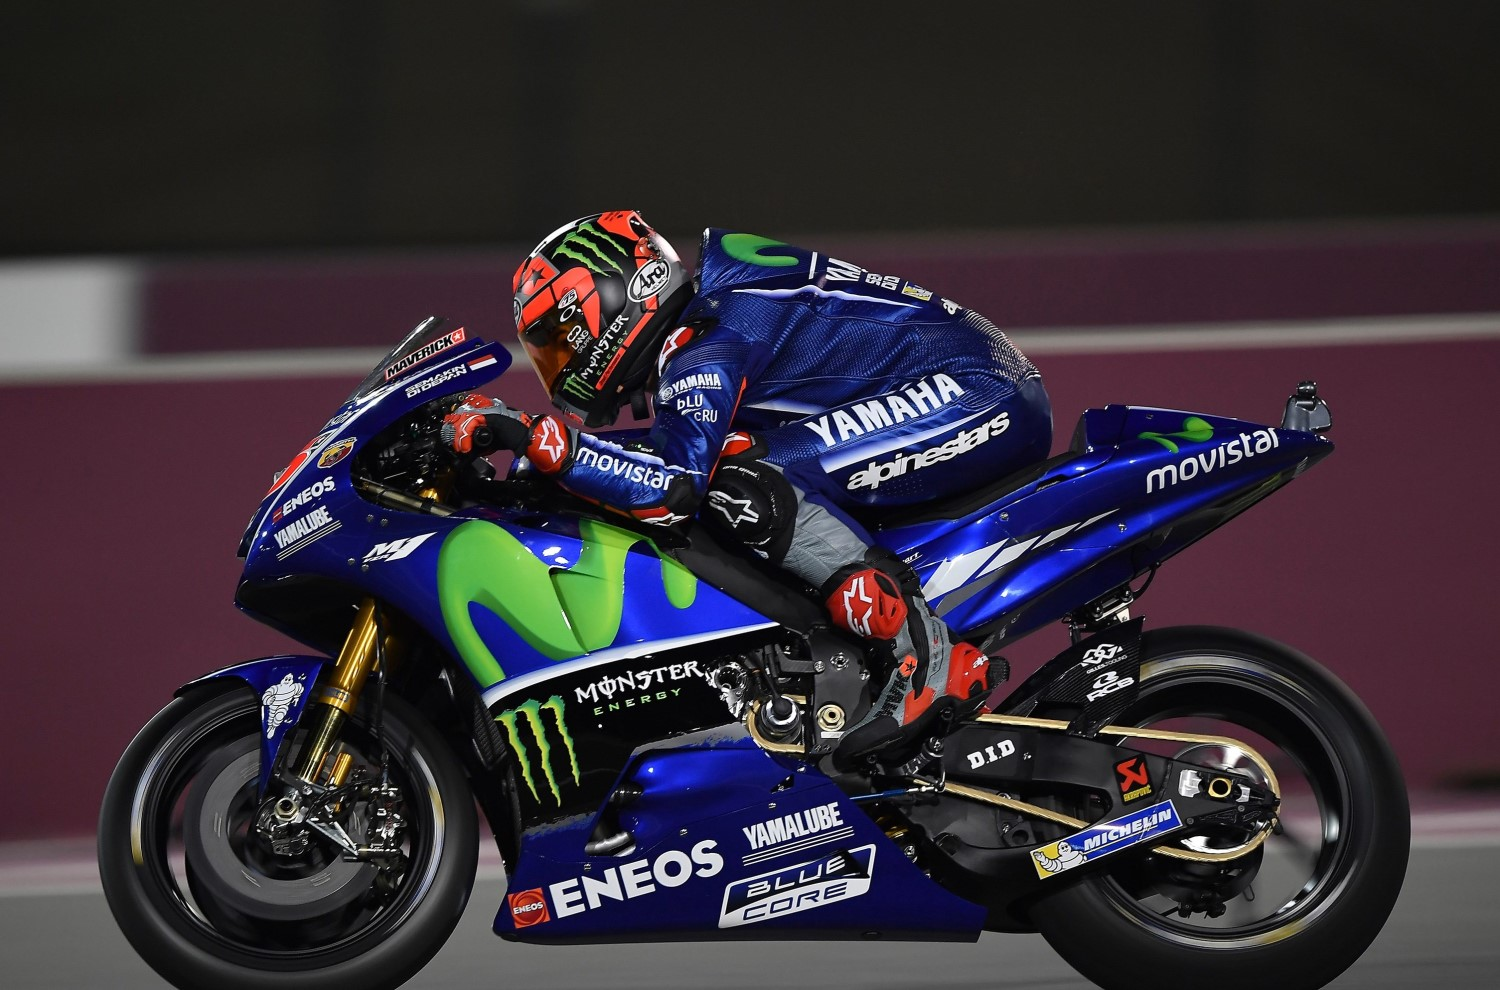 Maverick Vinales charges to debut win